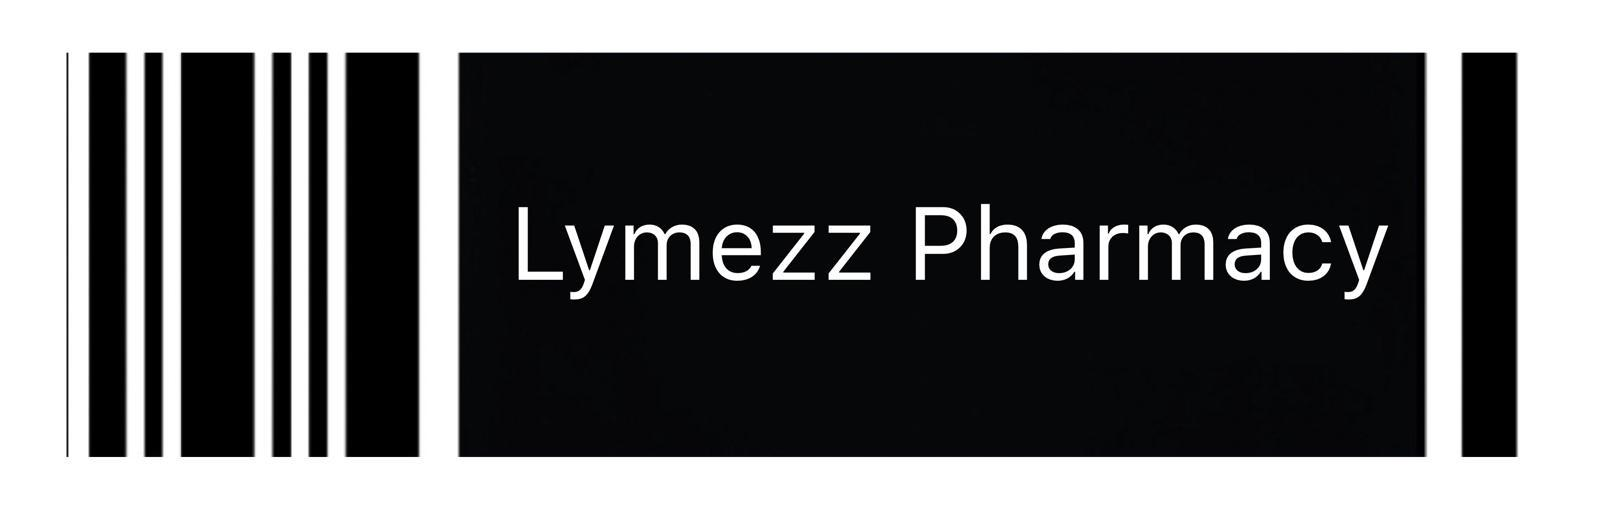 Lymezz Pharmacy Ltd